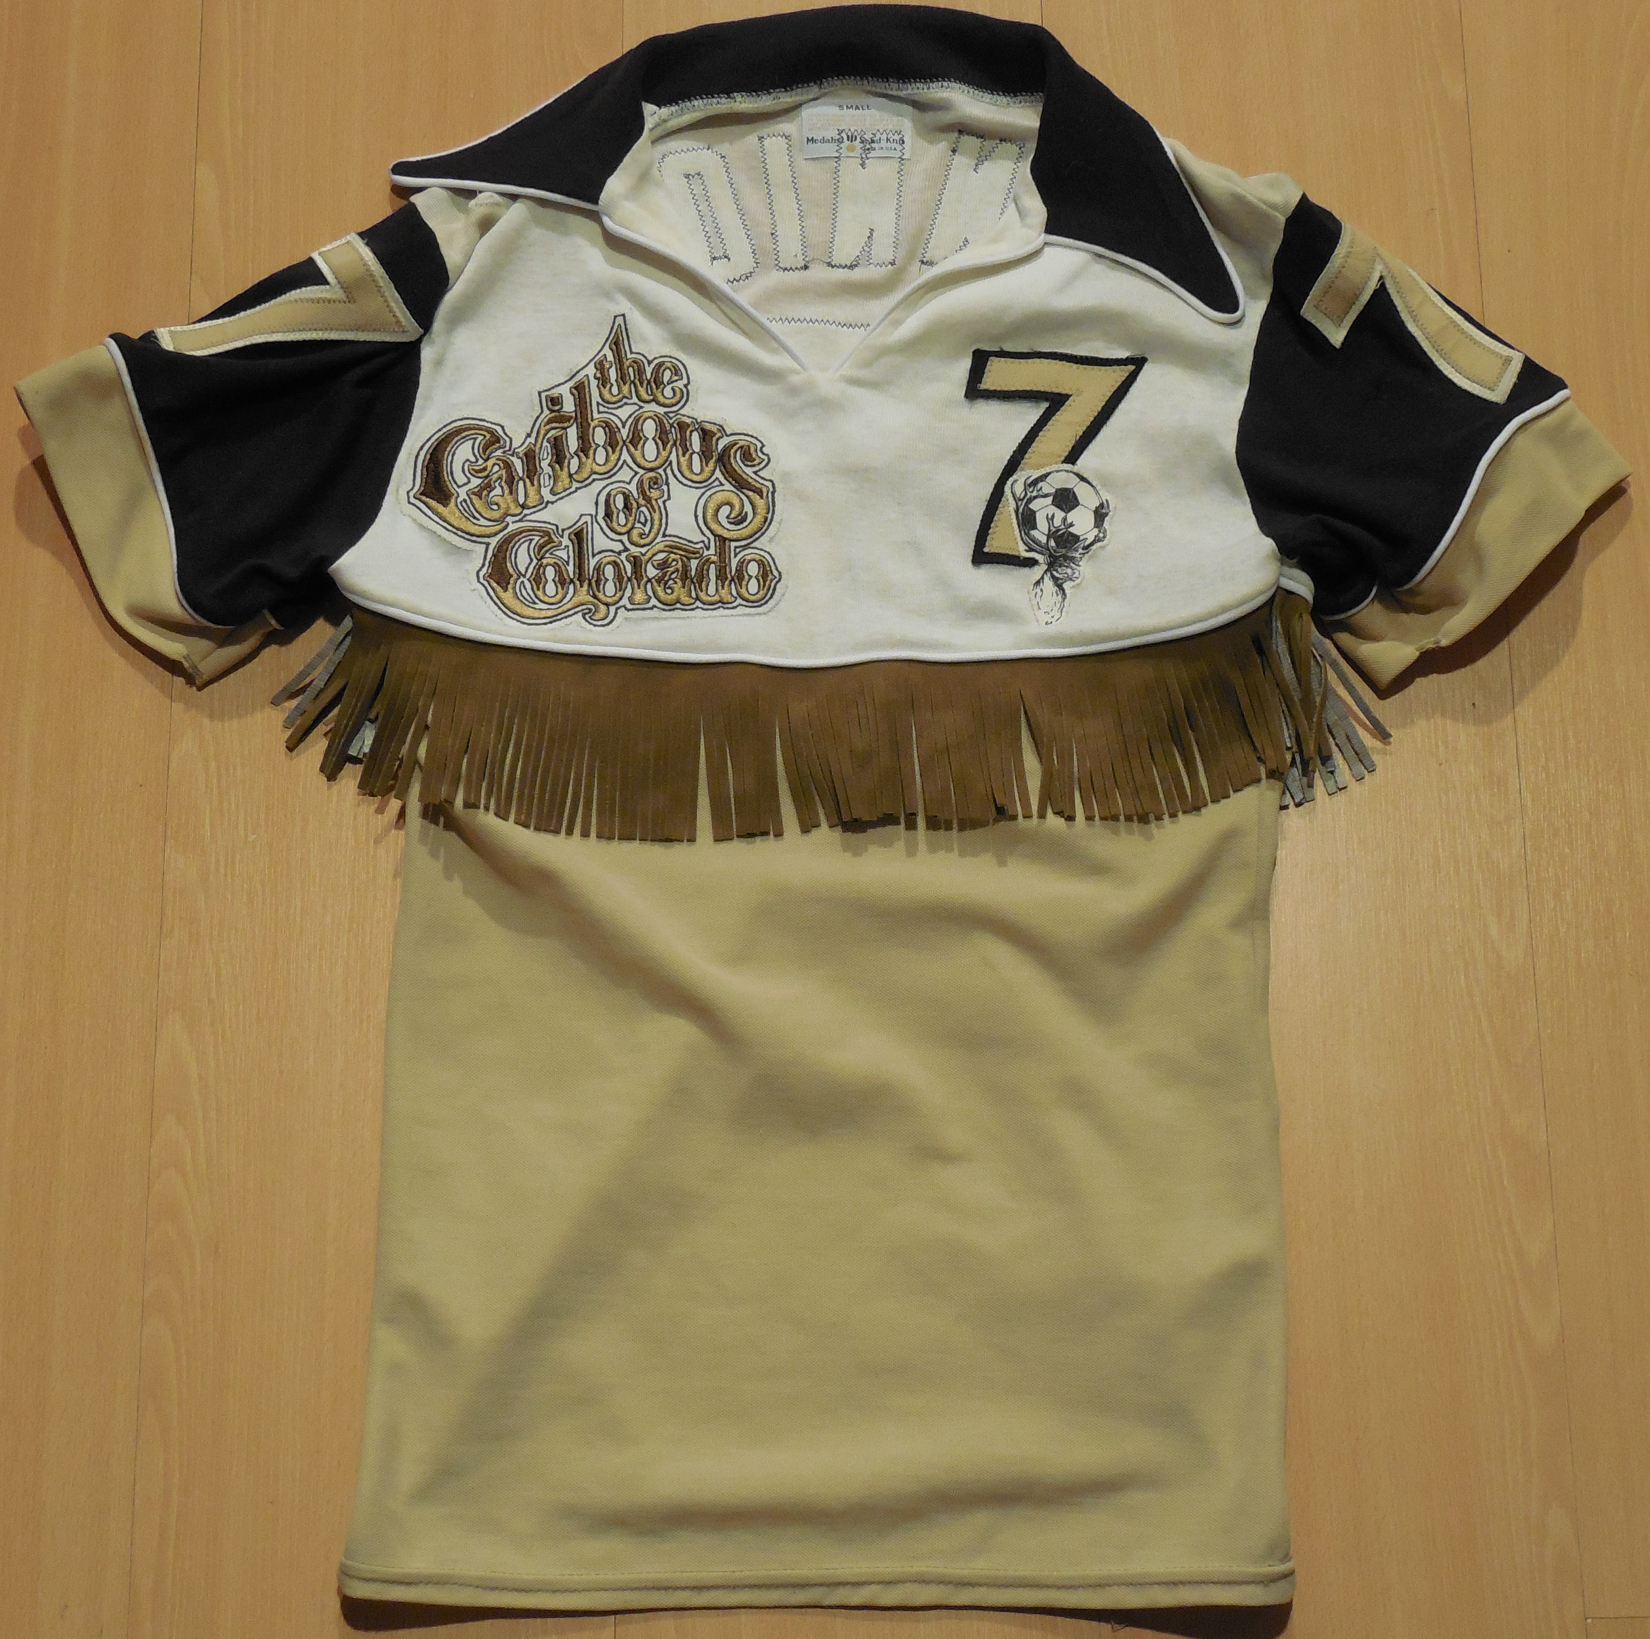 Caribous%2078%20Home%20Jersey%20Brian%20